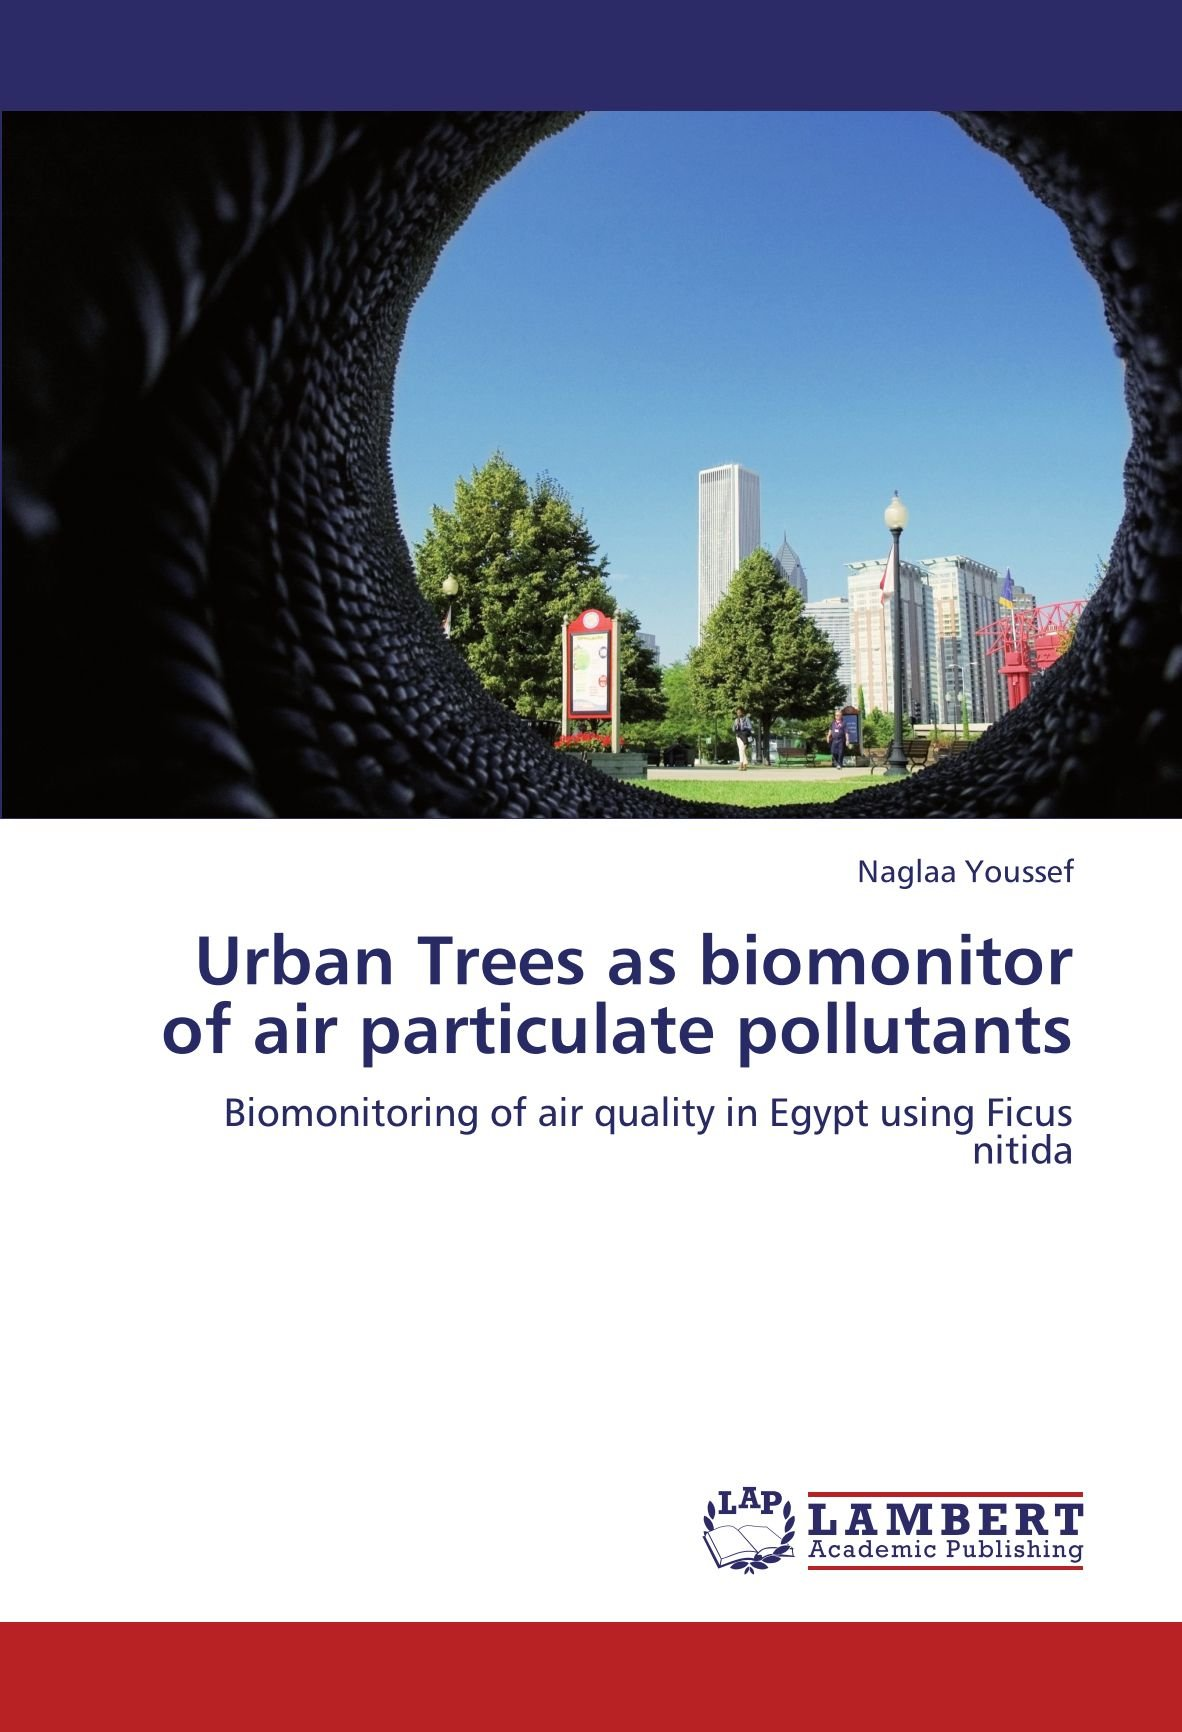 Urban Trees as biomonitor of air particulate pollutants: Biomonitoring of air quality in Egypt using Ficus nitida PDF